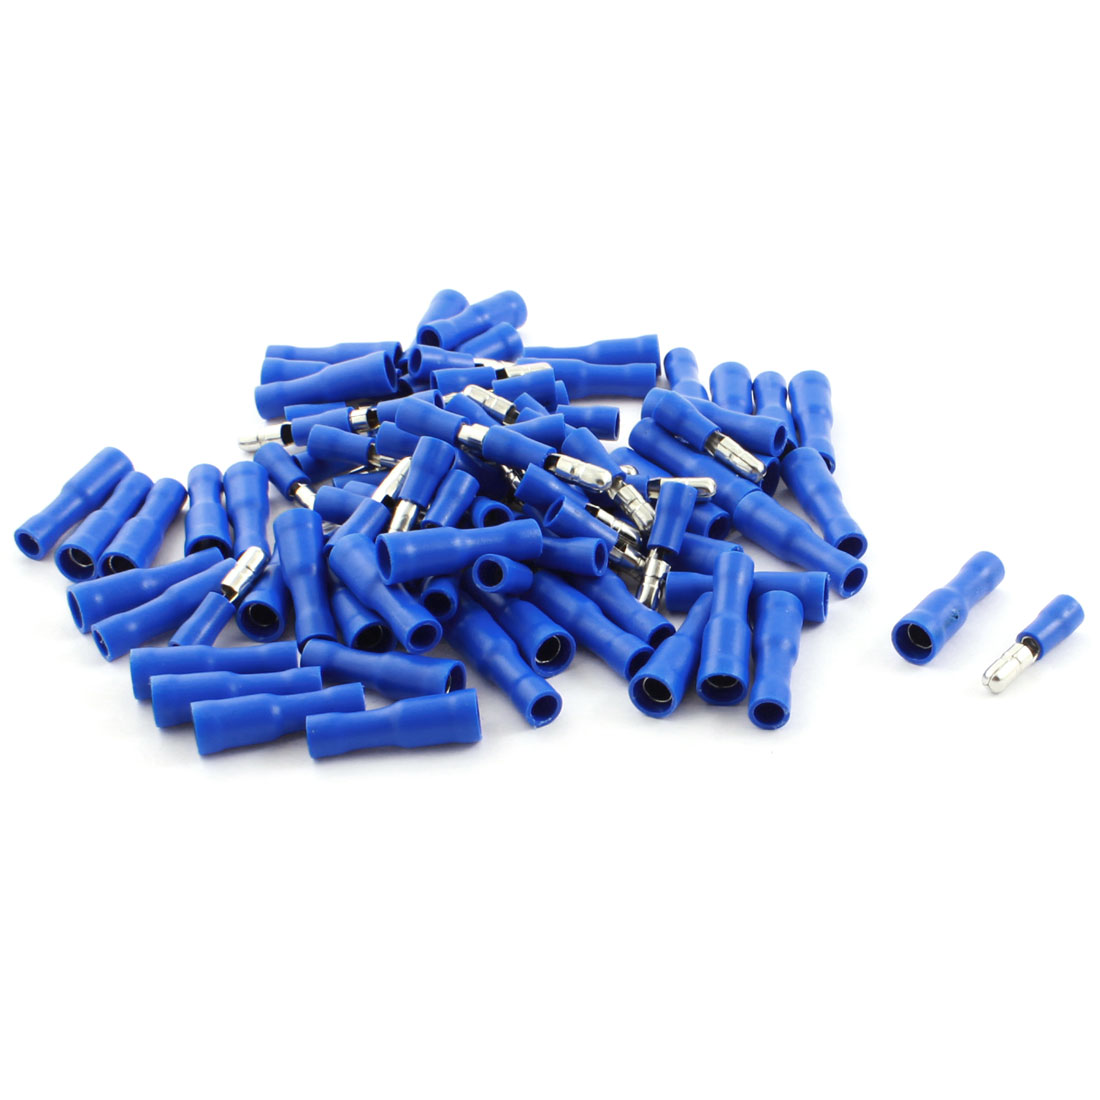 FRD2-156 Blue Full Insulated Male/Female Electrical Crimp Terminal Cable Connector 15A 16-14AWG 100 Pcs